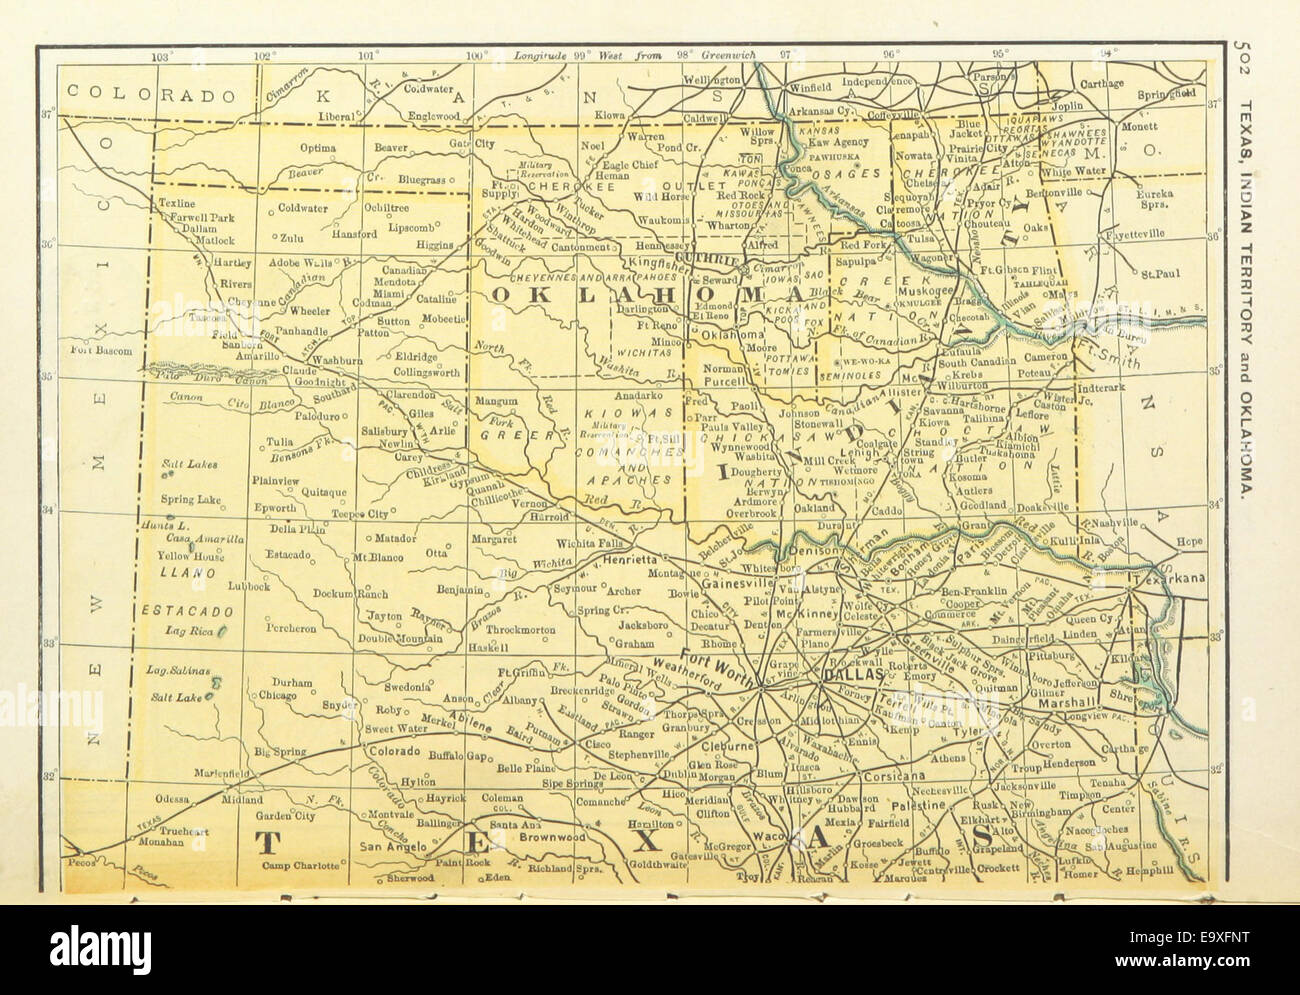 Map Of Texas And Oklahoma.Us Maps 1891 P504 Map Of Texas Oklahoma And Indian Territory L